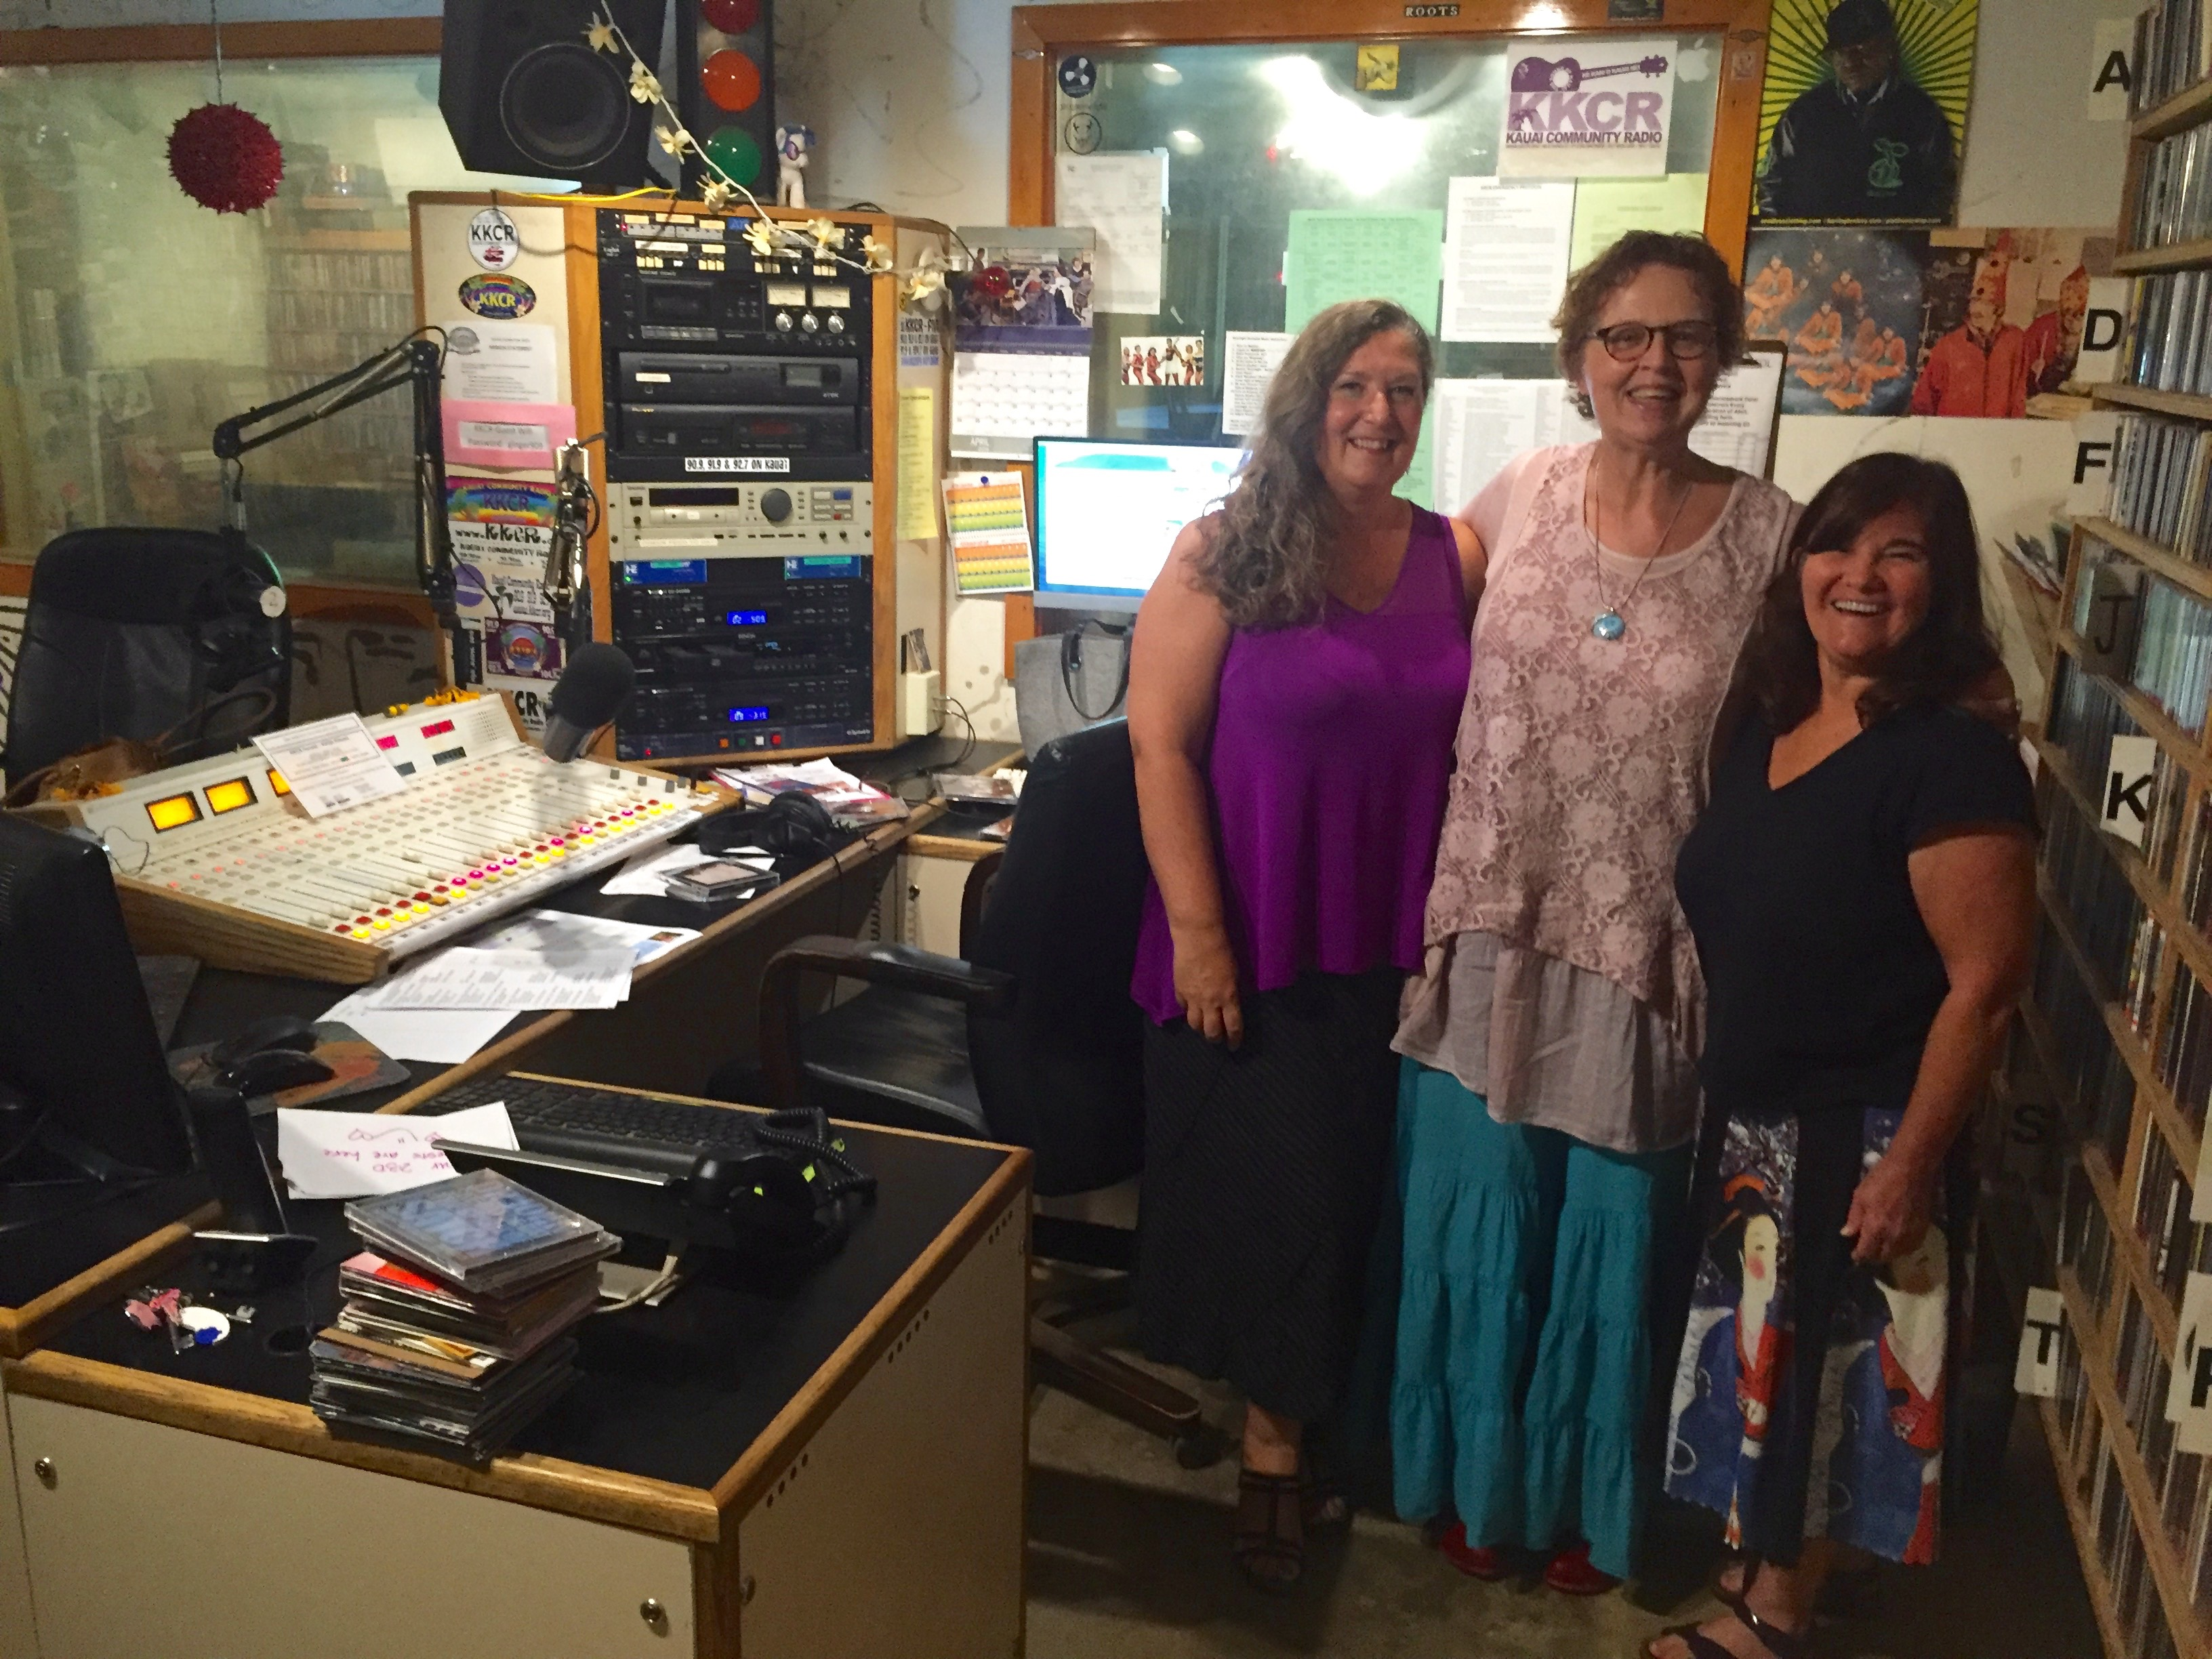 Malou Berg and El Herington with Tracey Shaney at KKCR radio station, Kauai